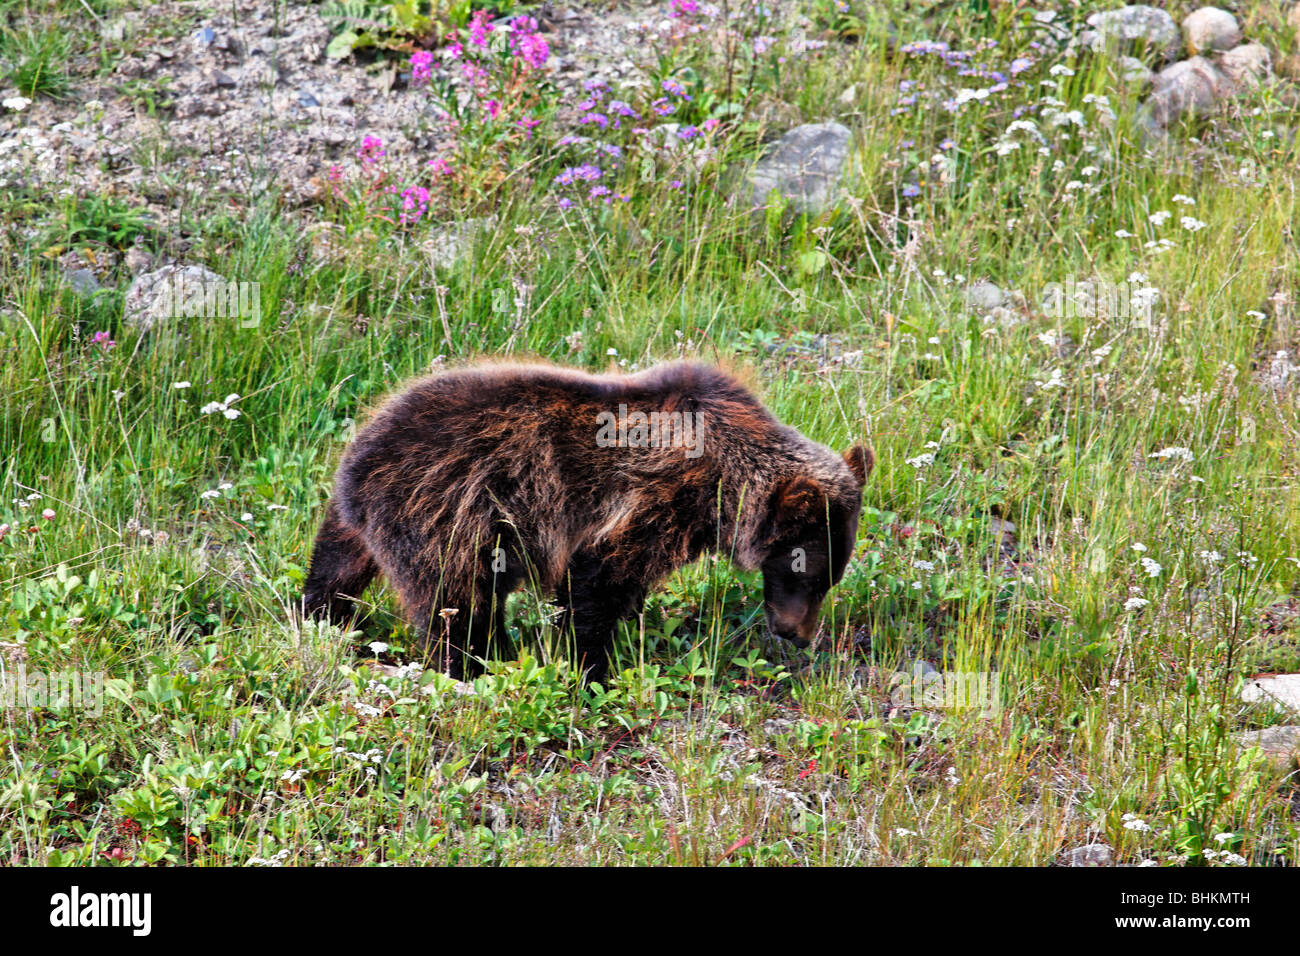 Grizzly Bear Eating Wildflowers on an Alpine Meadow, Alberta, Canada - Stock Image